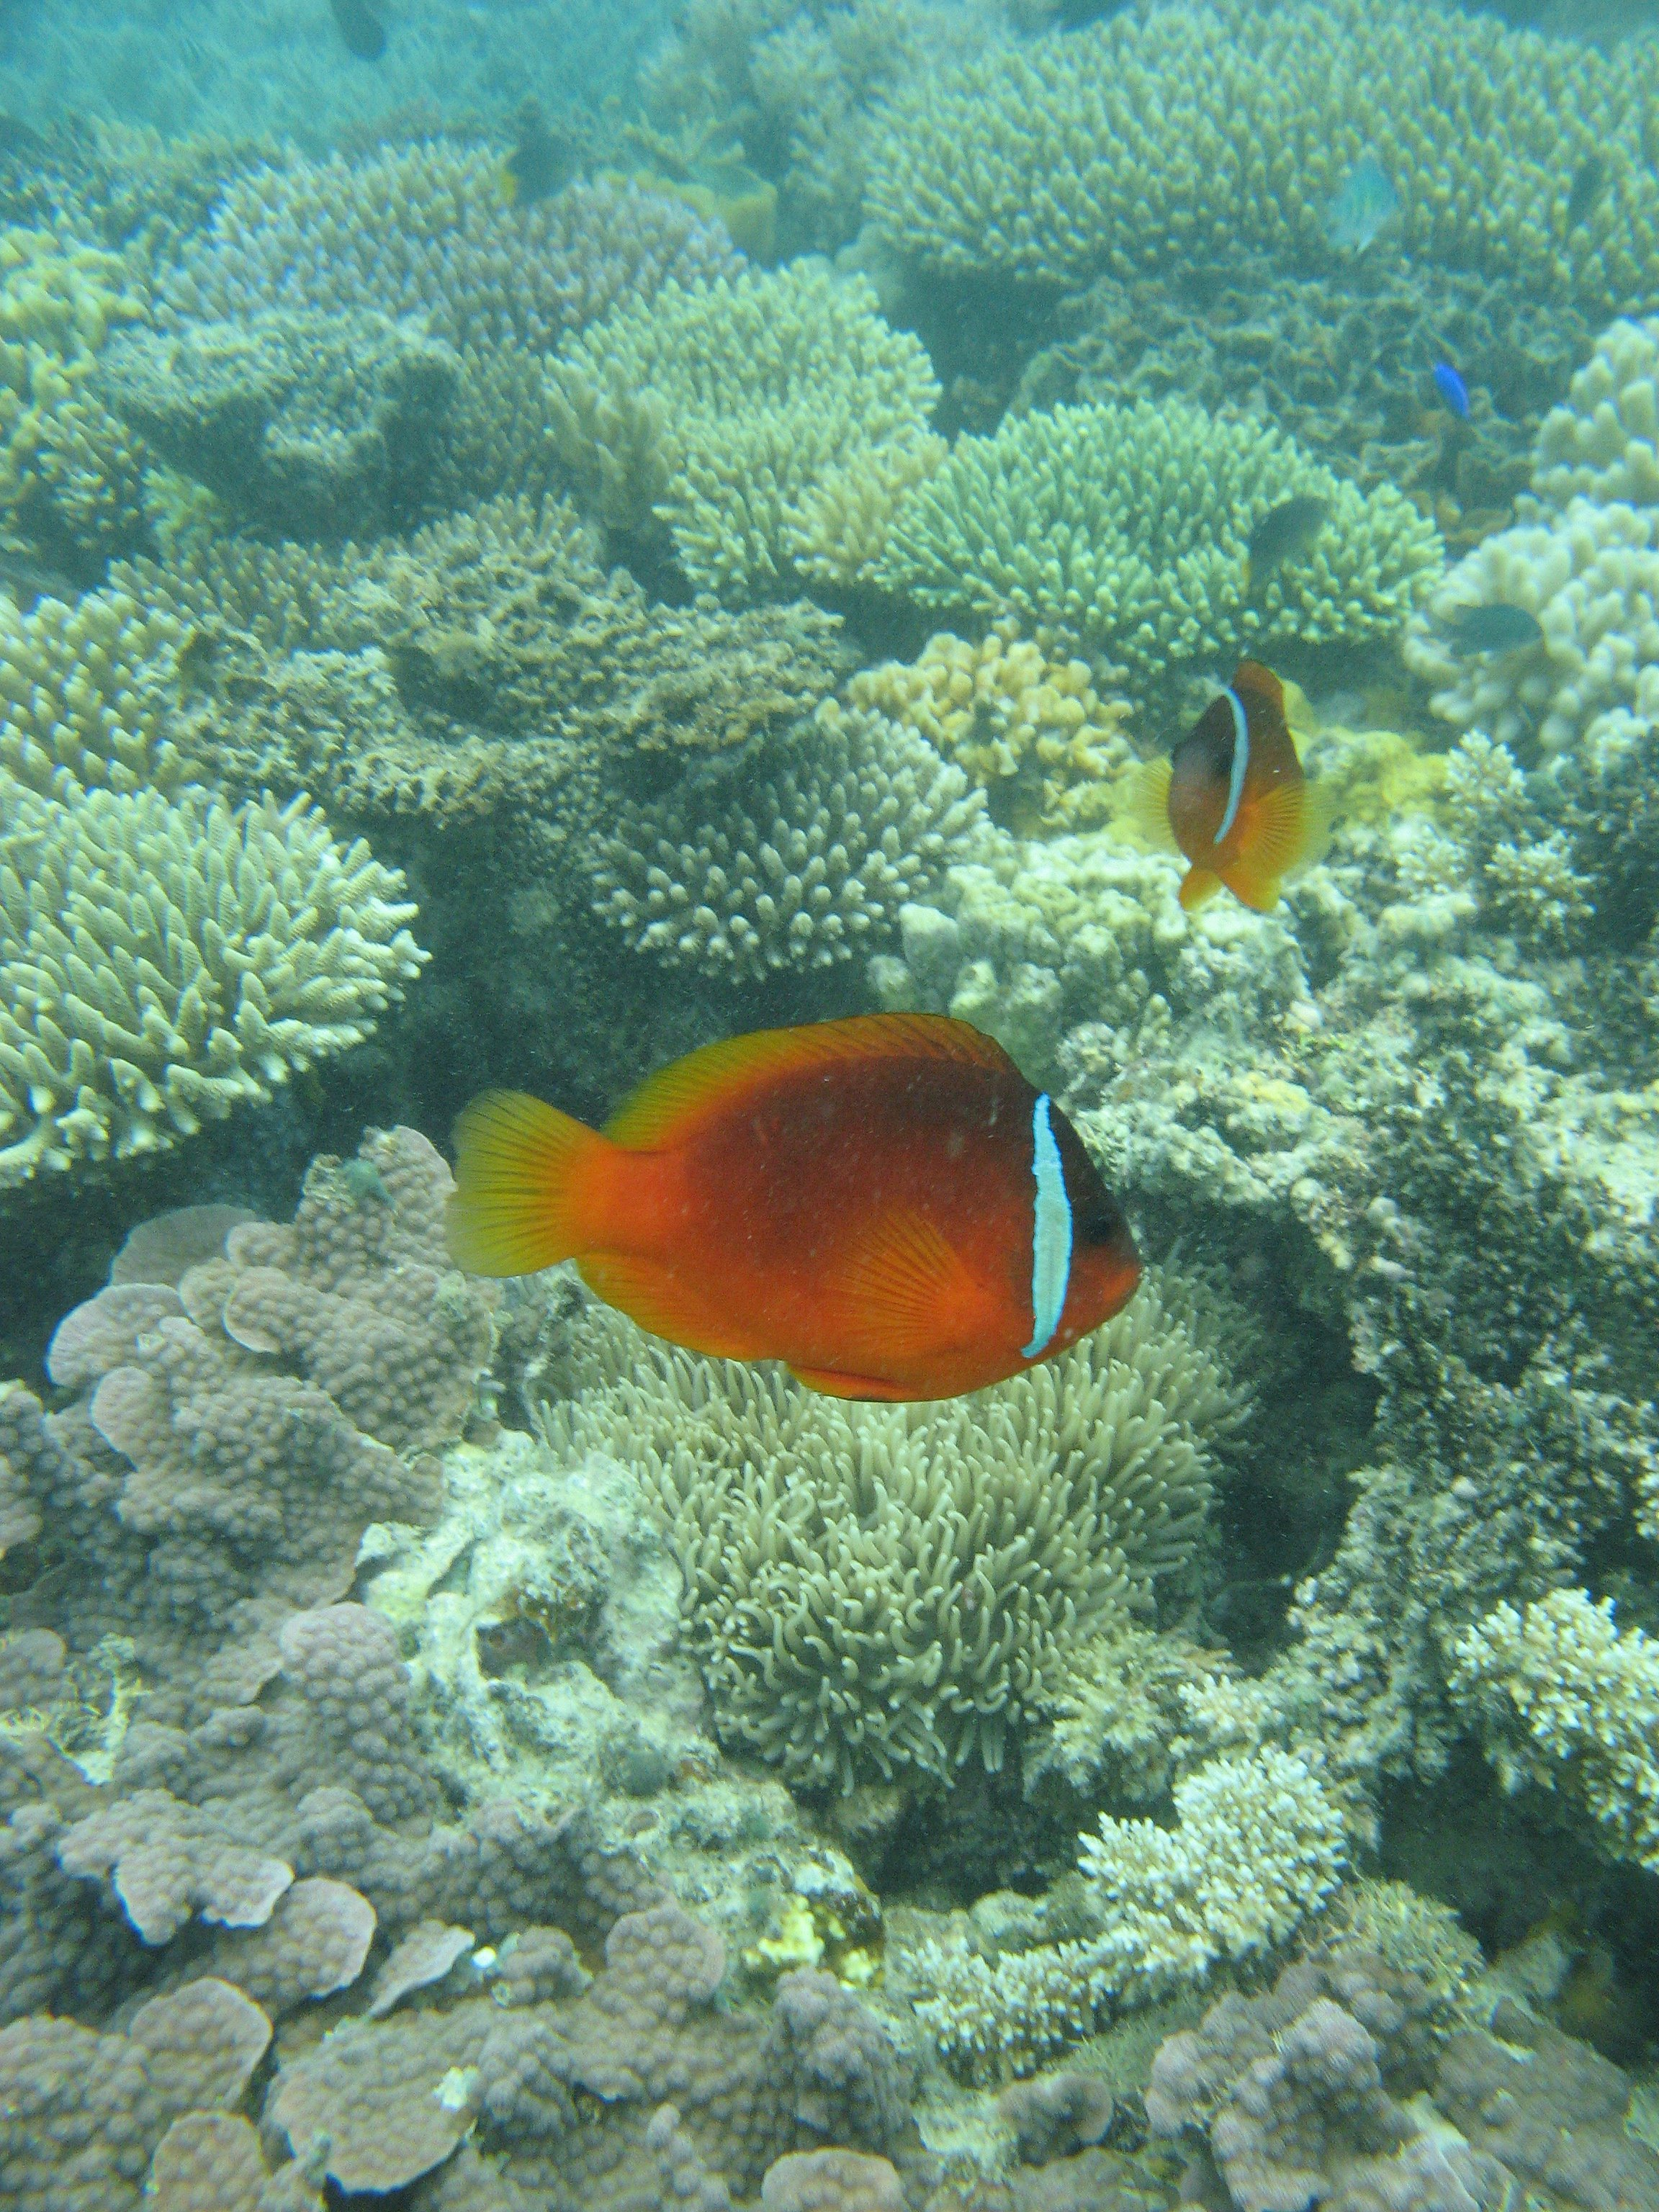 Fiji tomato anemonefish(Amphiprion sp.)